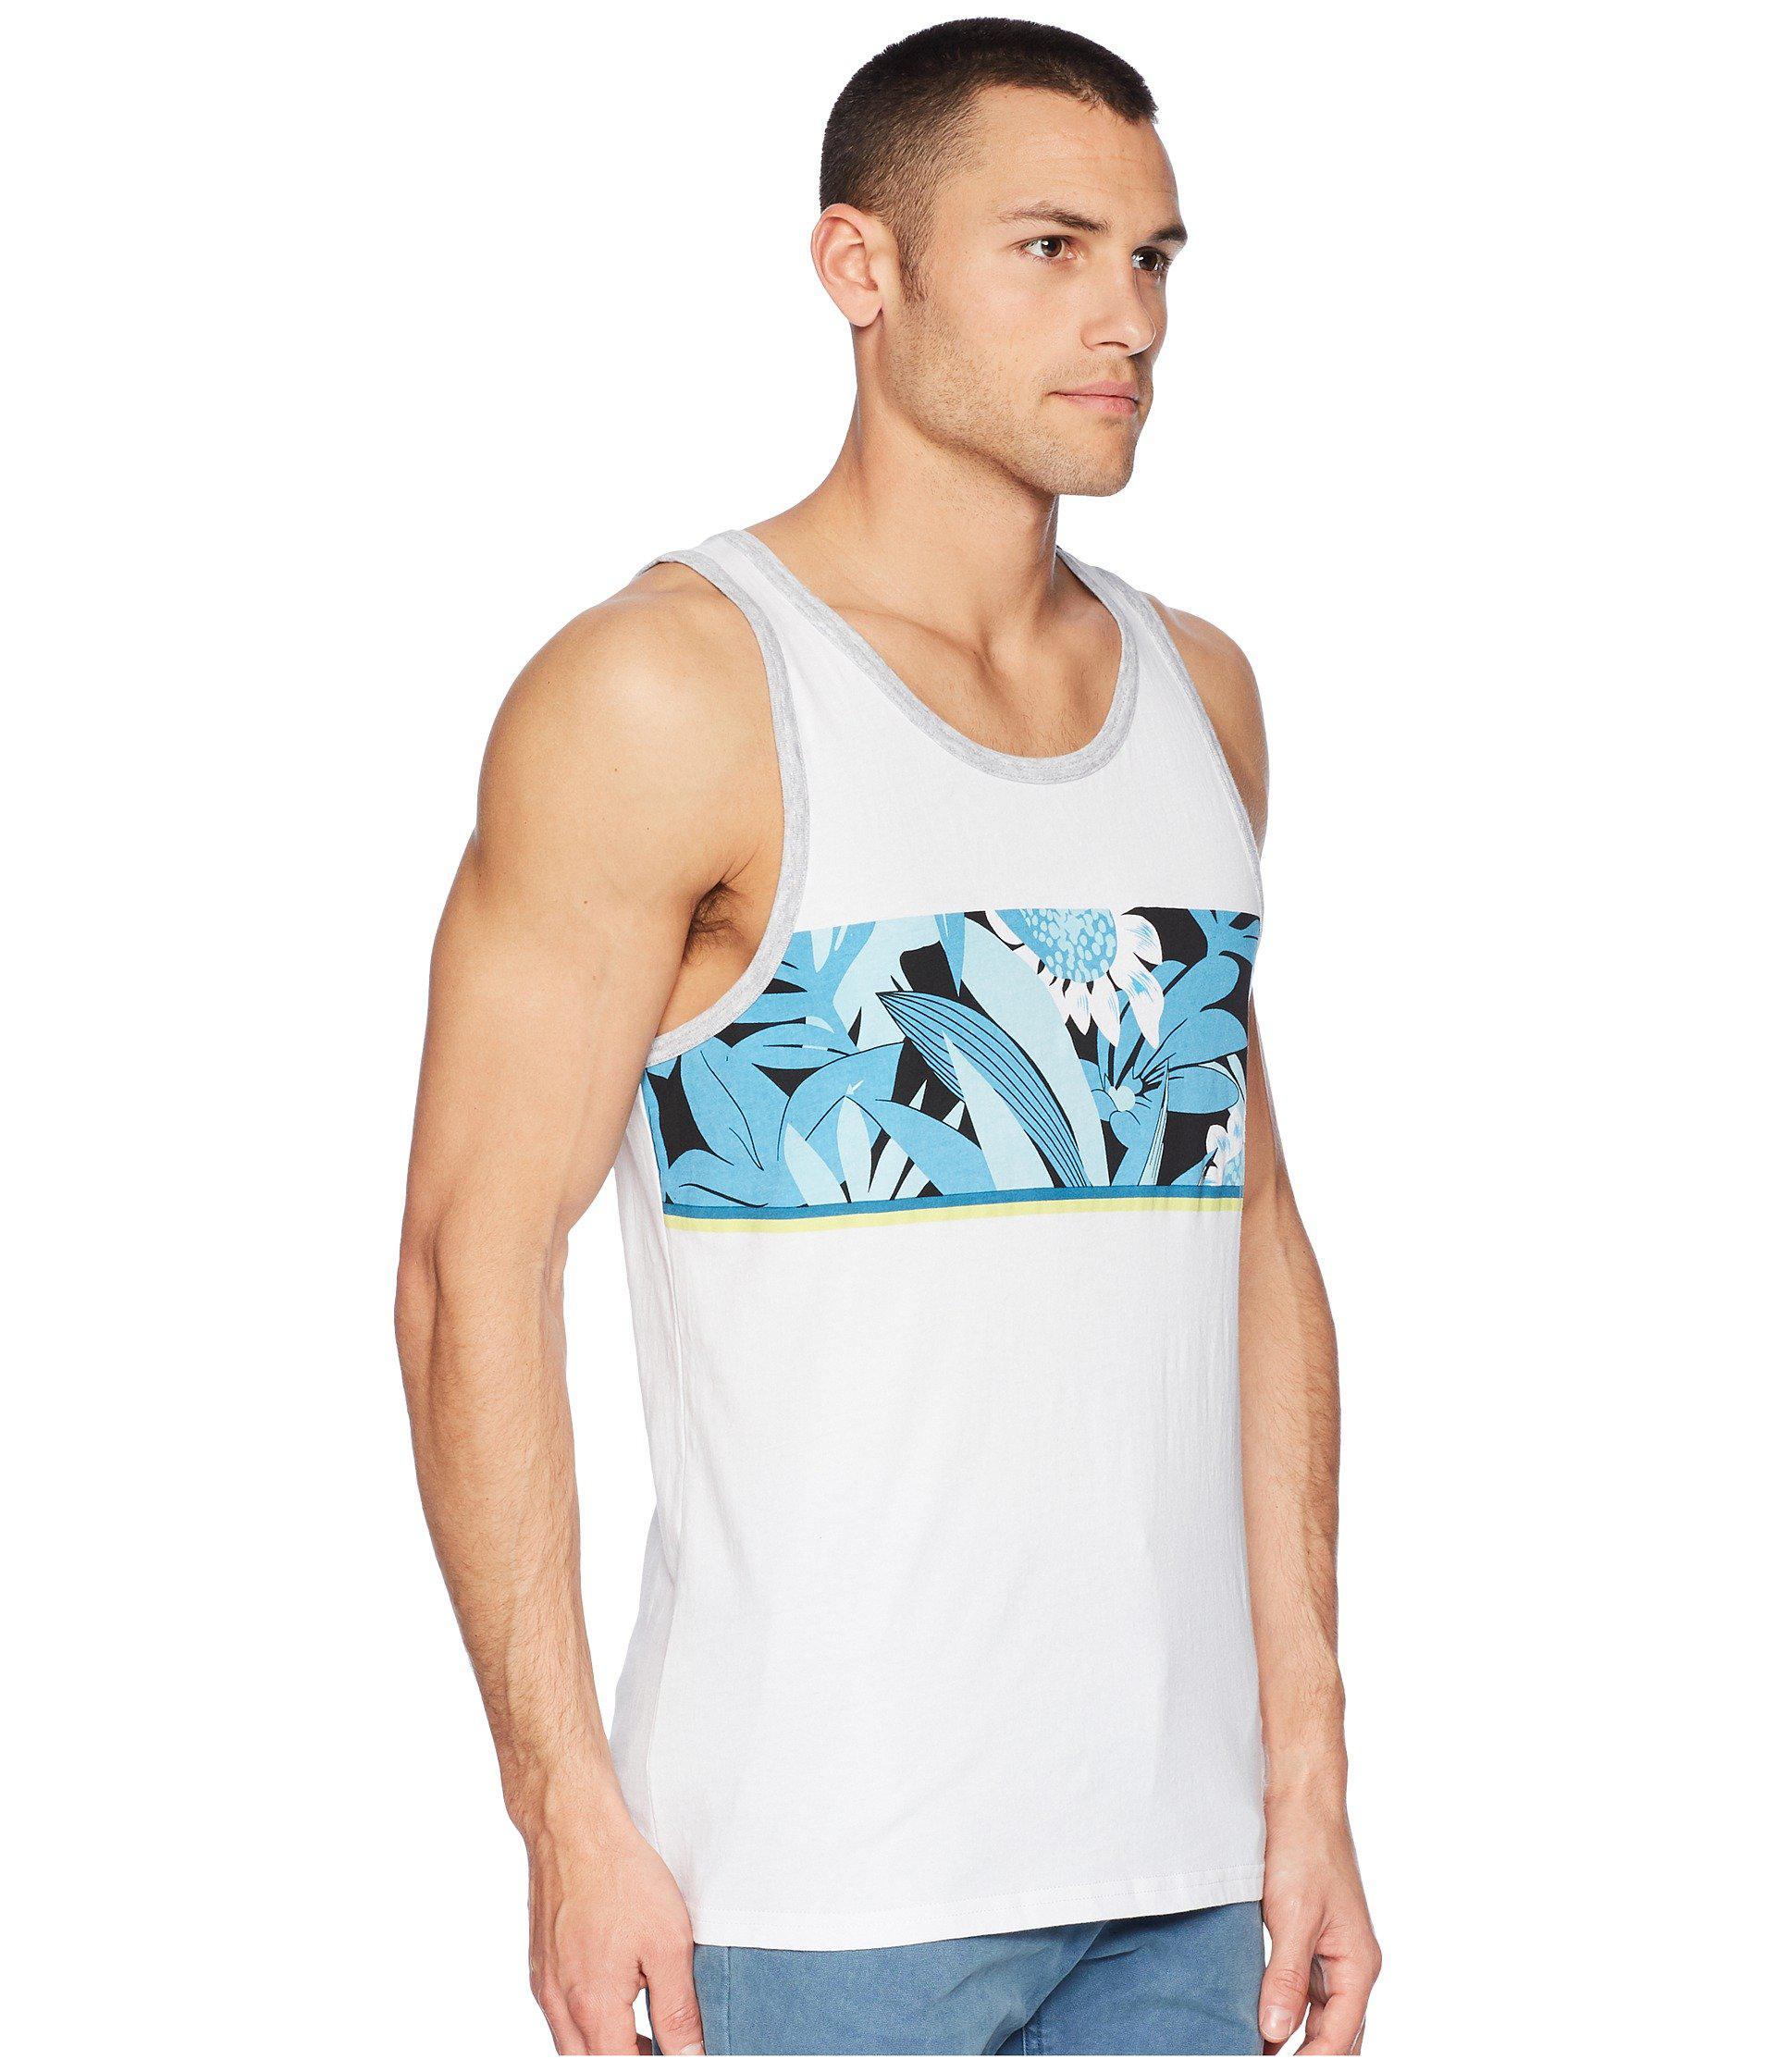 f22a0e13b7f17c Lyst - Quiksilver Slash Tank Top (white black) Men s Sleeveless in ...